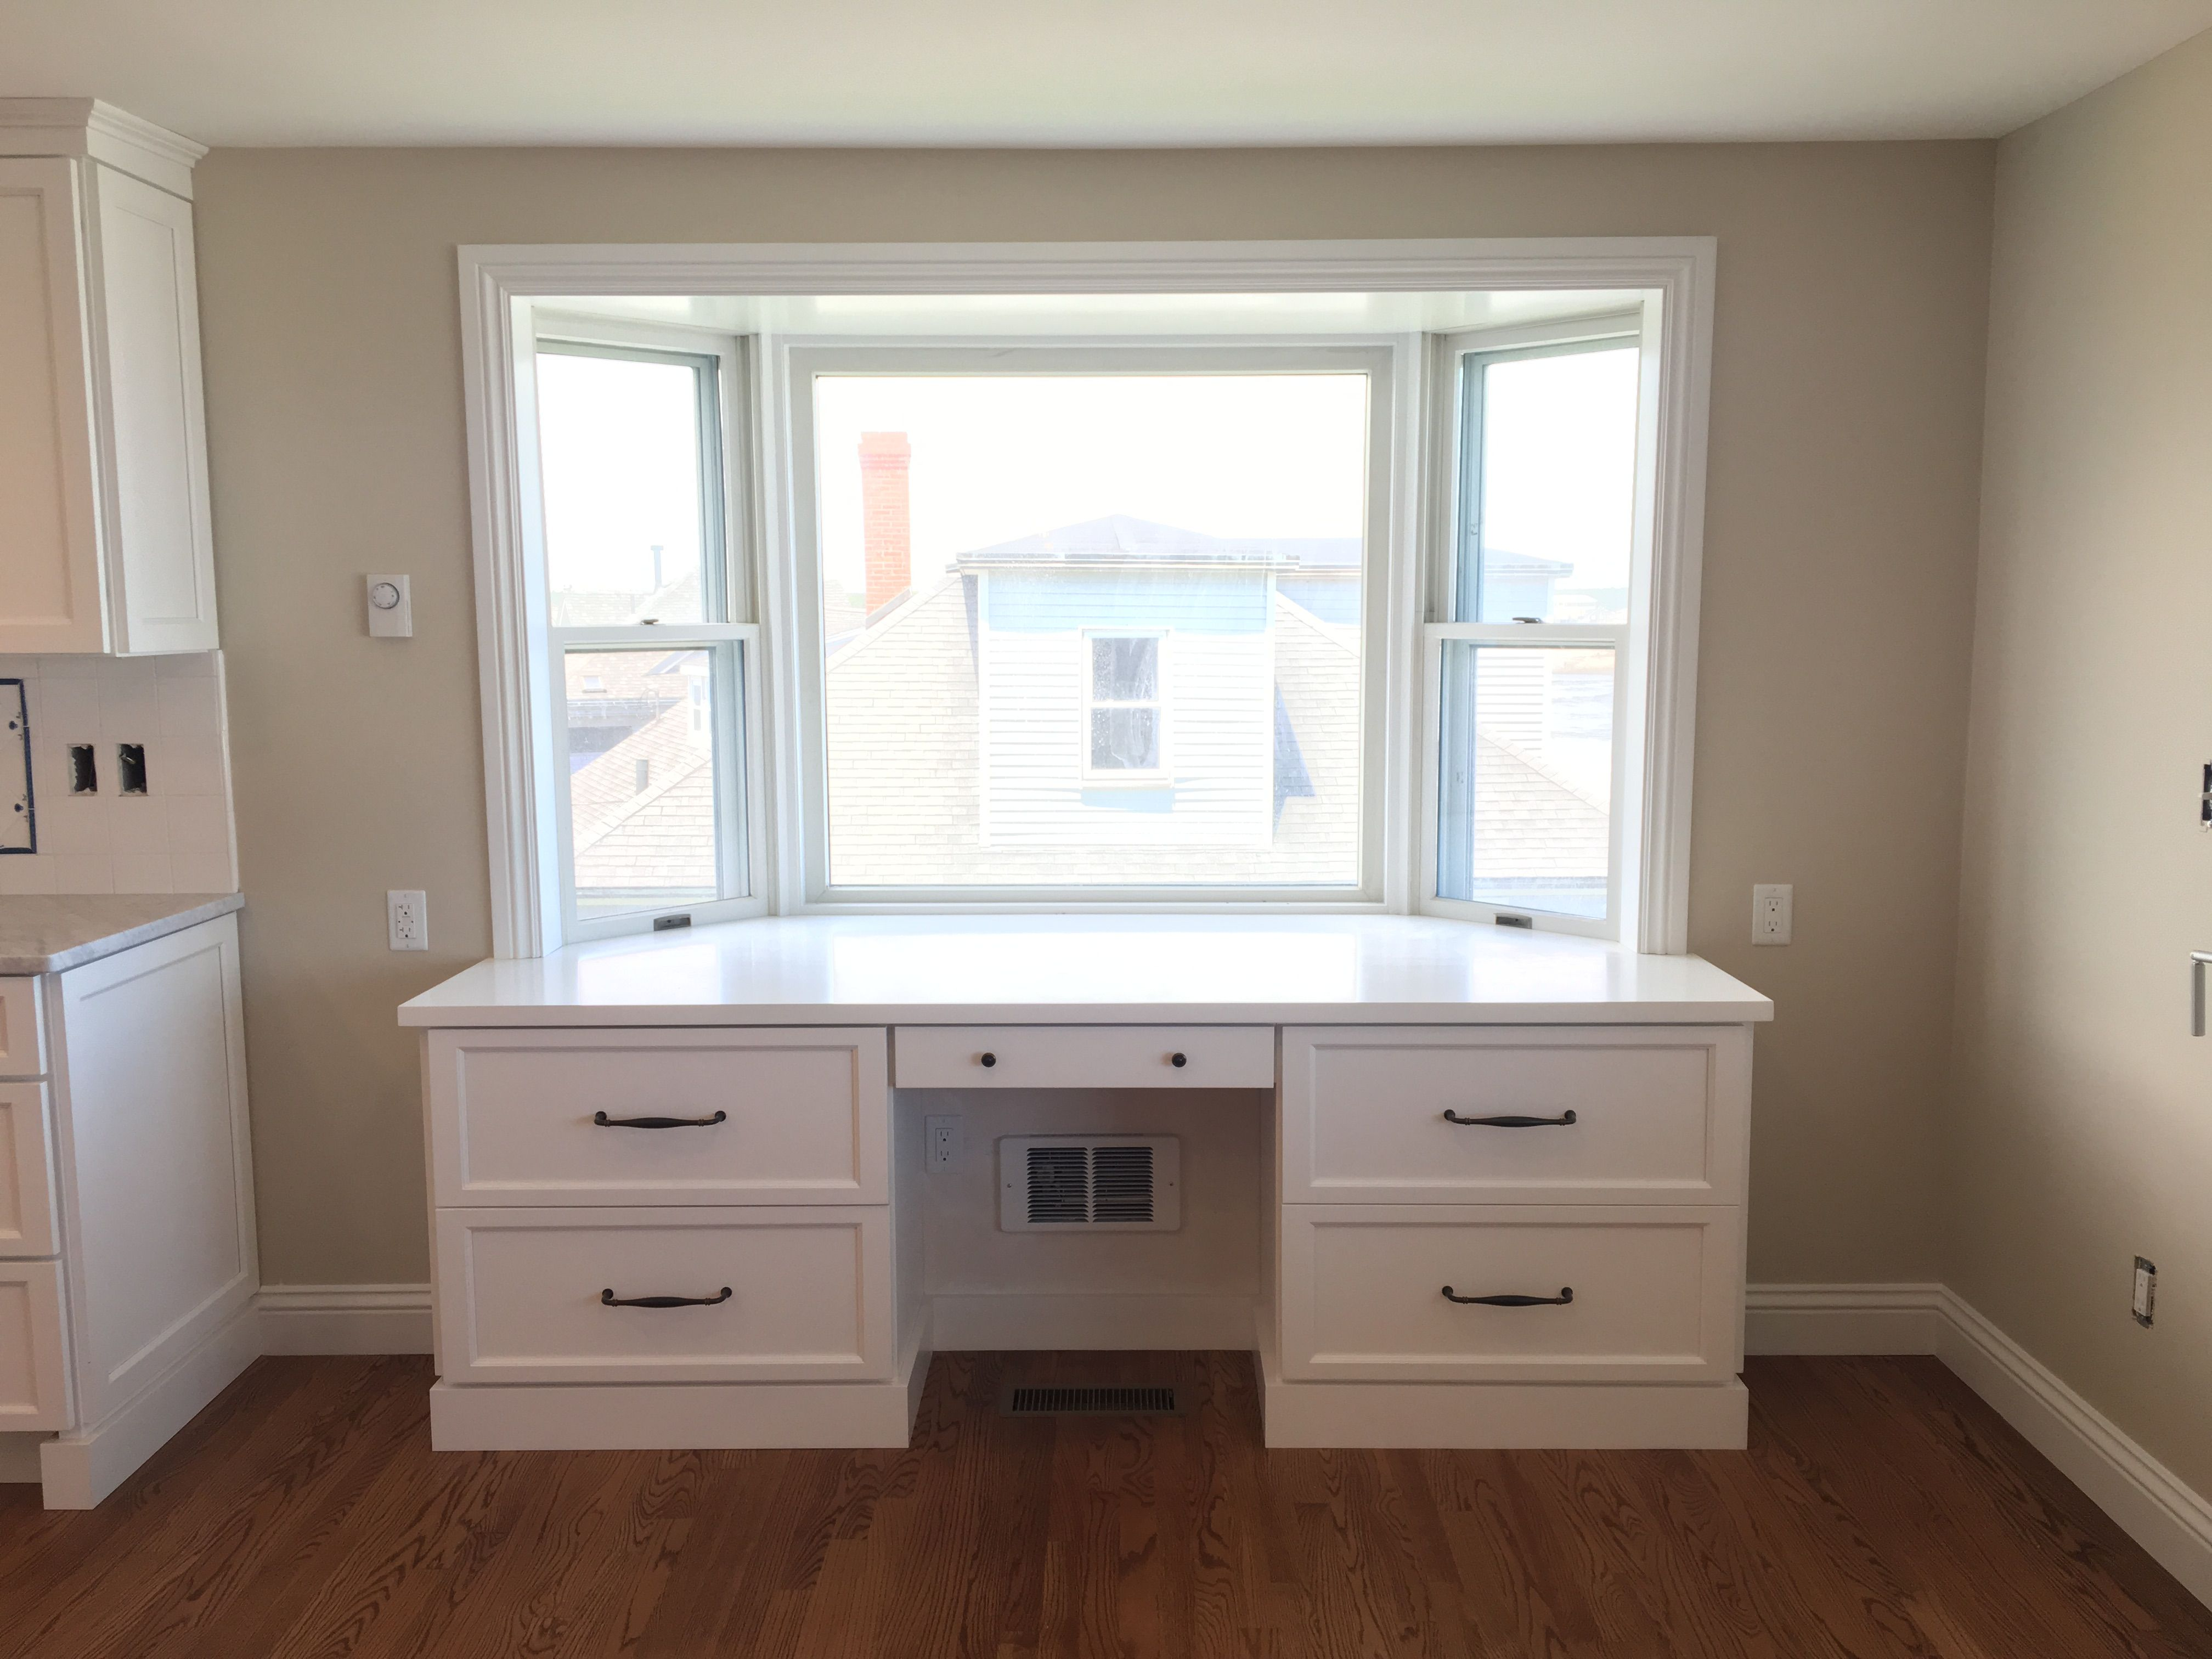 Walls baby fawn oc 15 eggshell latex regal trim benjamin moore white readymix advanced water based alkyd satin impervo white 01